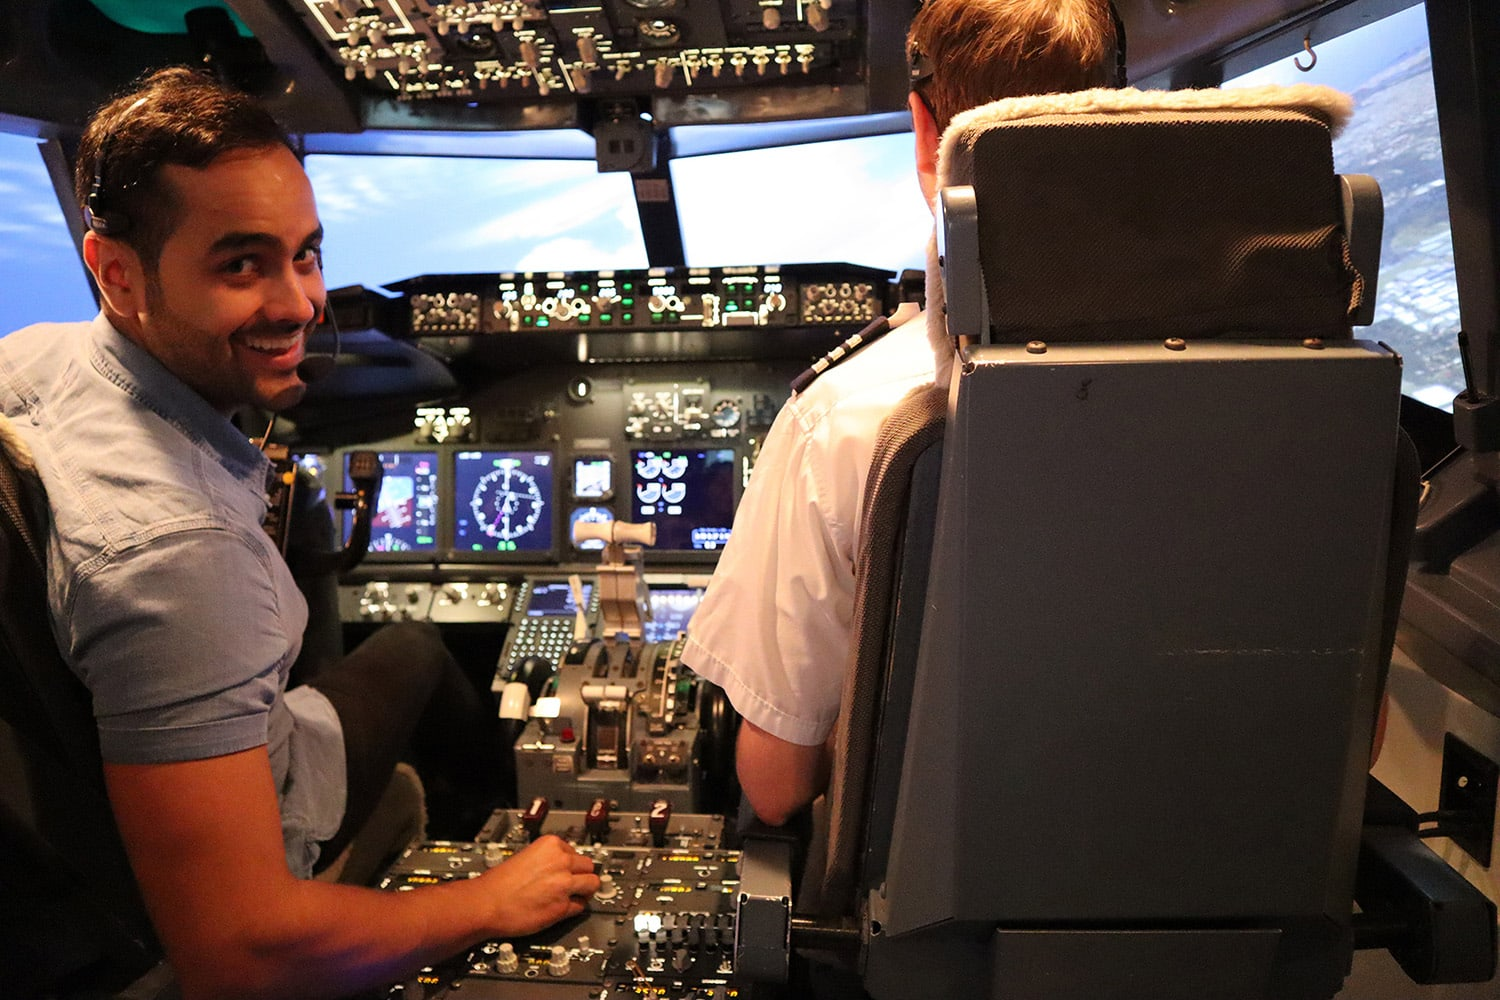 Boeing 737 Flight Simulator Parafield Airport, Adelaide - 1.5 Hour Shared Flight For Up To 3!